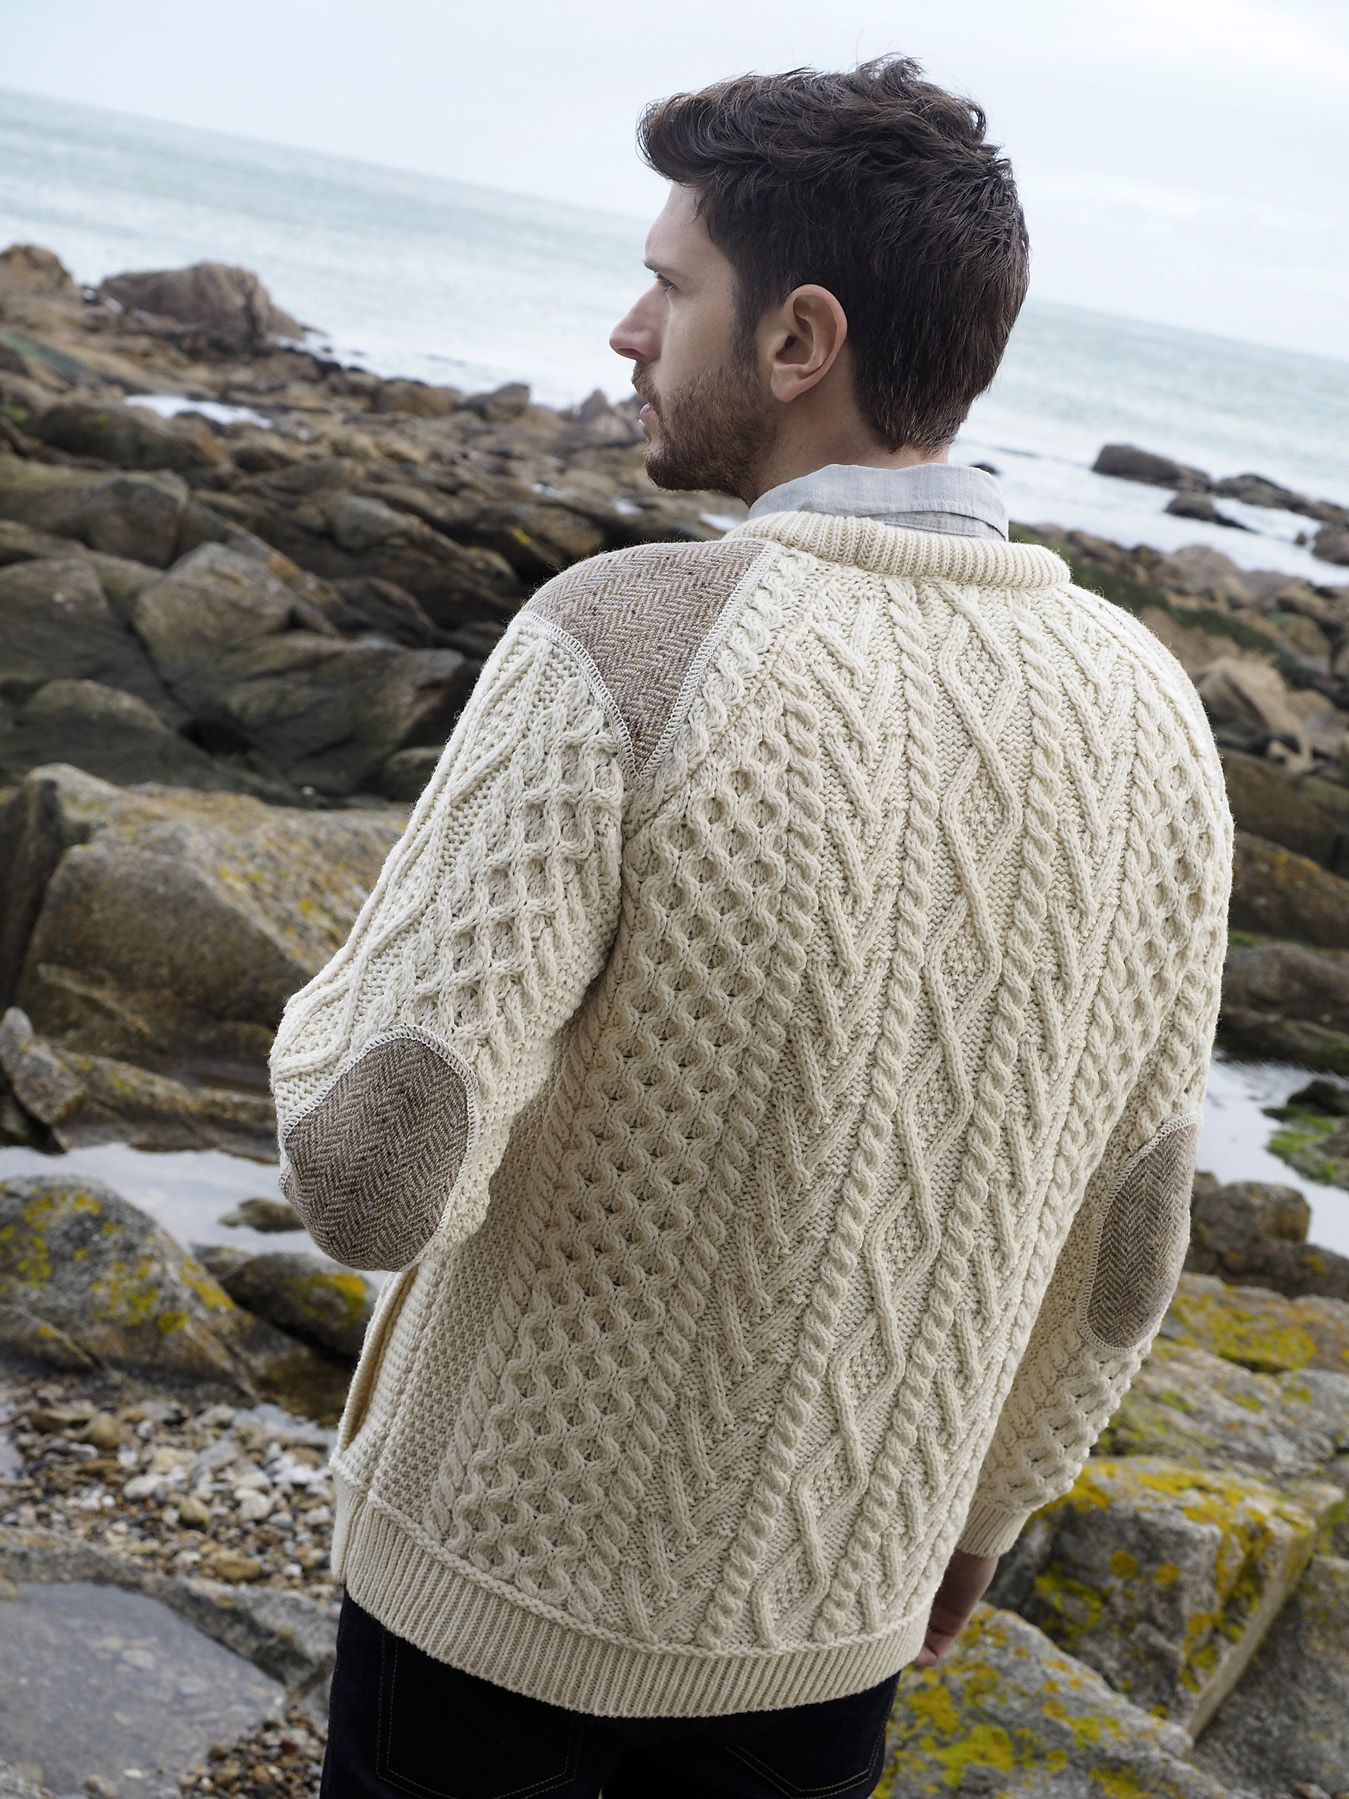 835b6f681ea40e Men s Crew Neck Sweater with Tweed Patches by Natallia Kulikouskaya for Aran  Crafts of Ireland